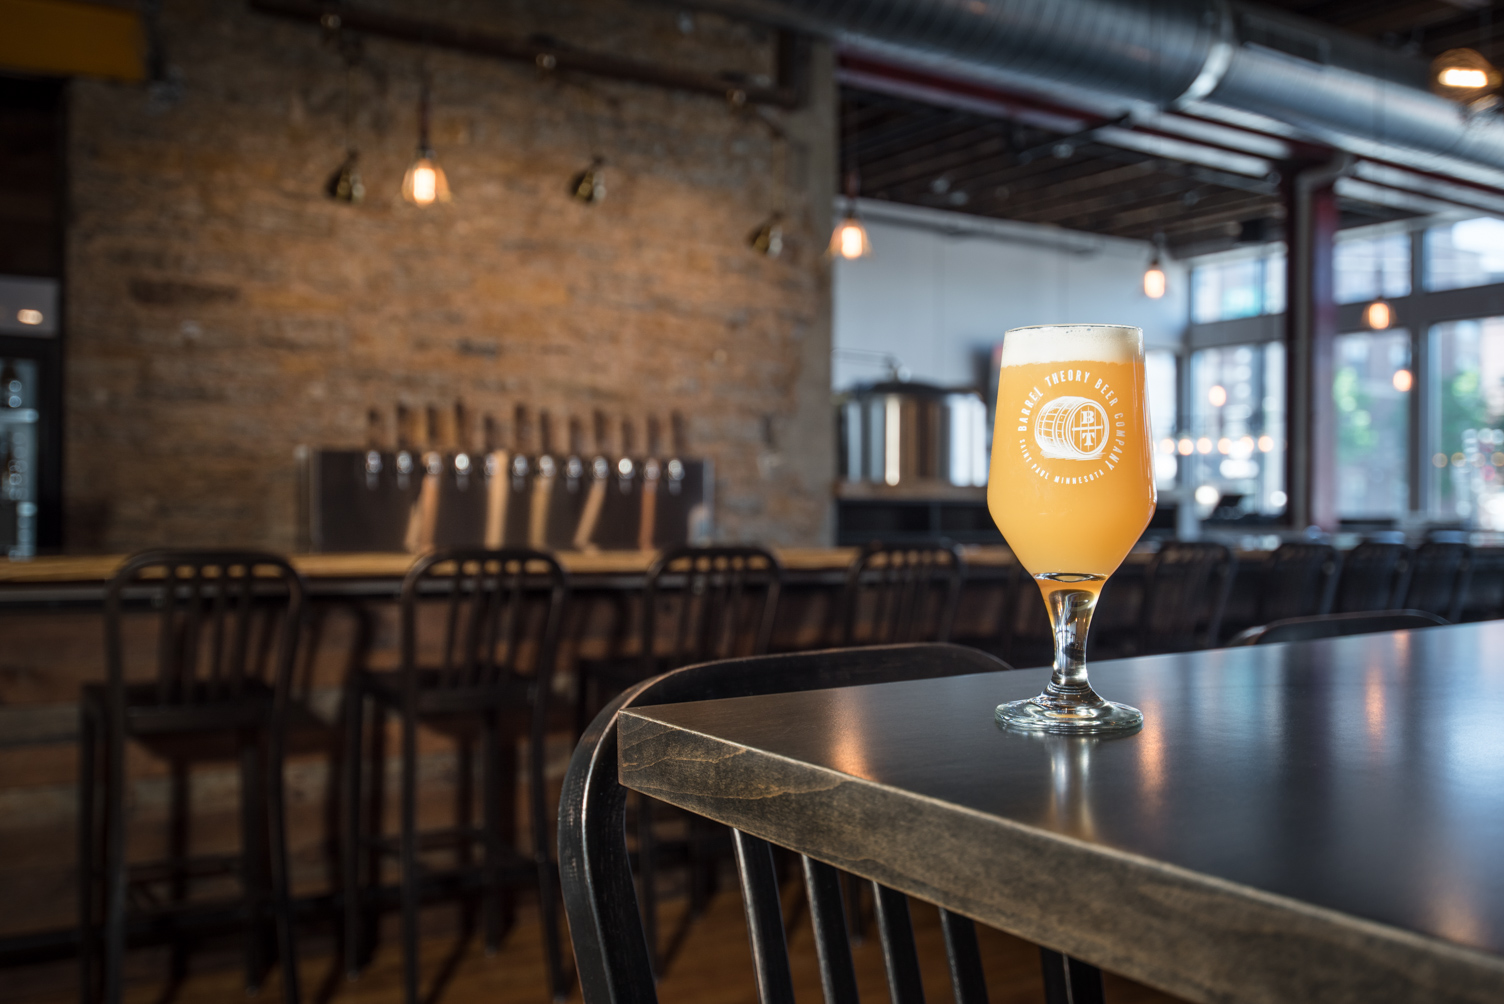 Barrel Theory Beer Company's new taproom is set to open by the end of June // Photo by Kevin Kramer